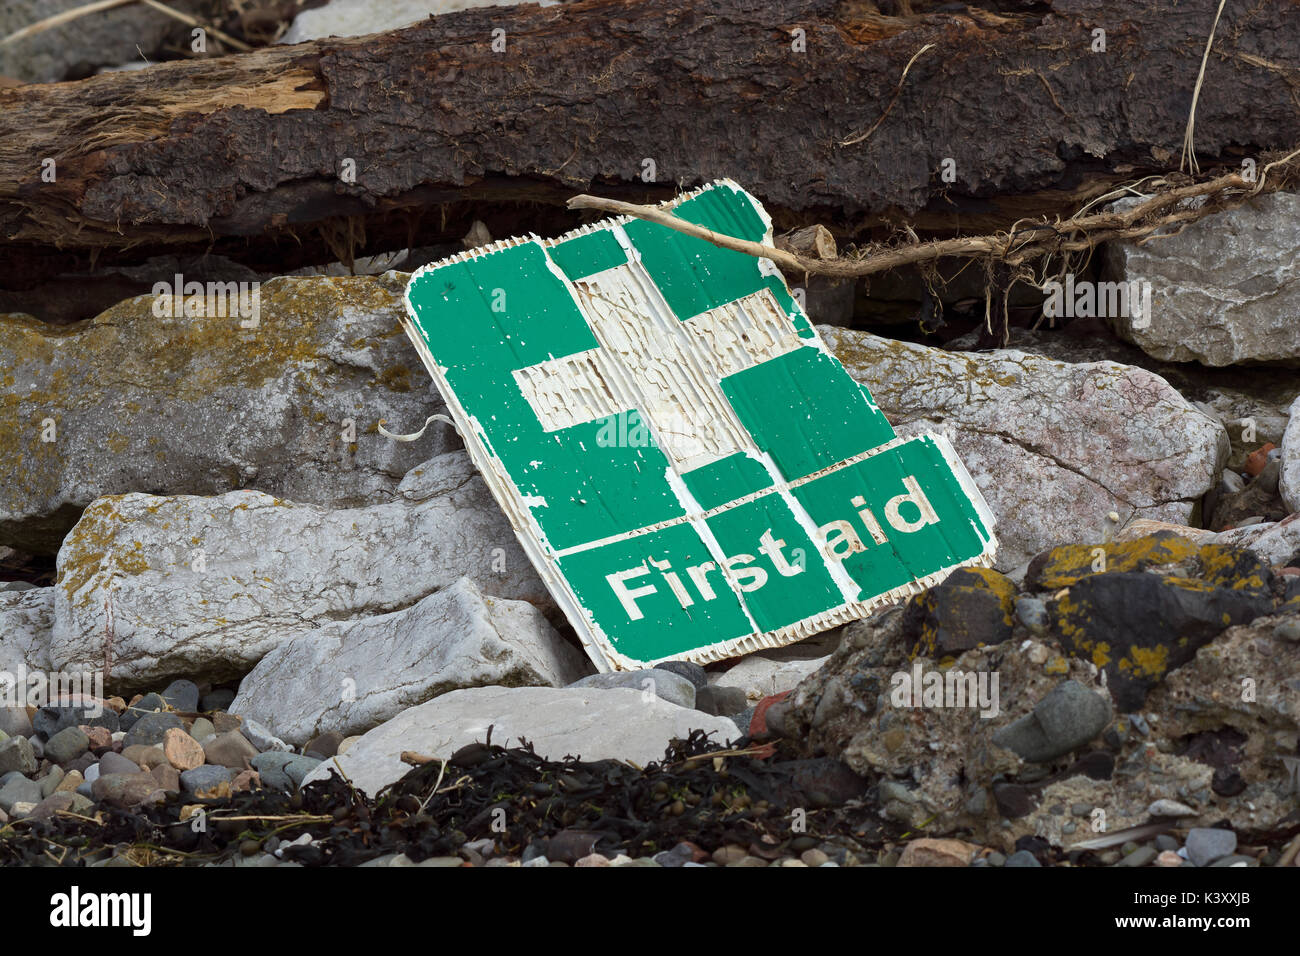 Plastic first aid sign washed up on beach in Lancashire - Stock Image